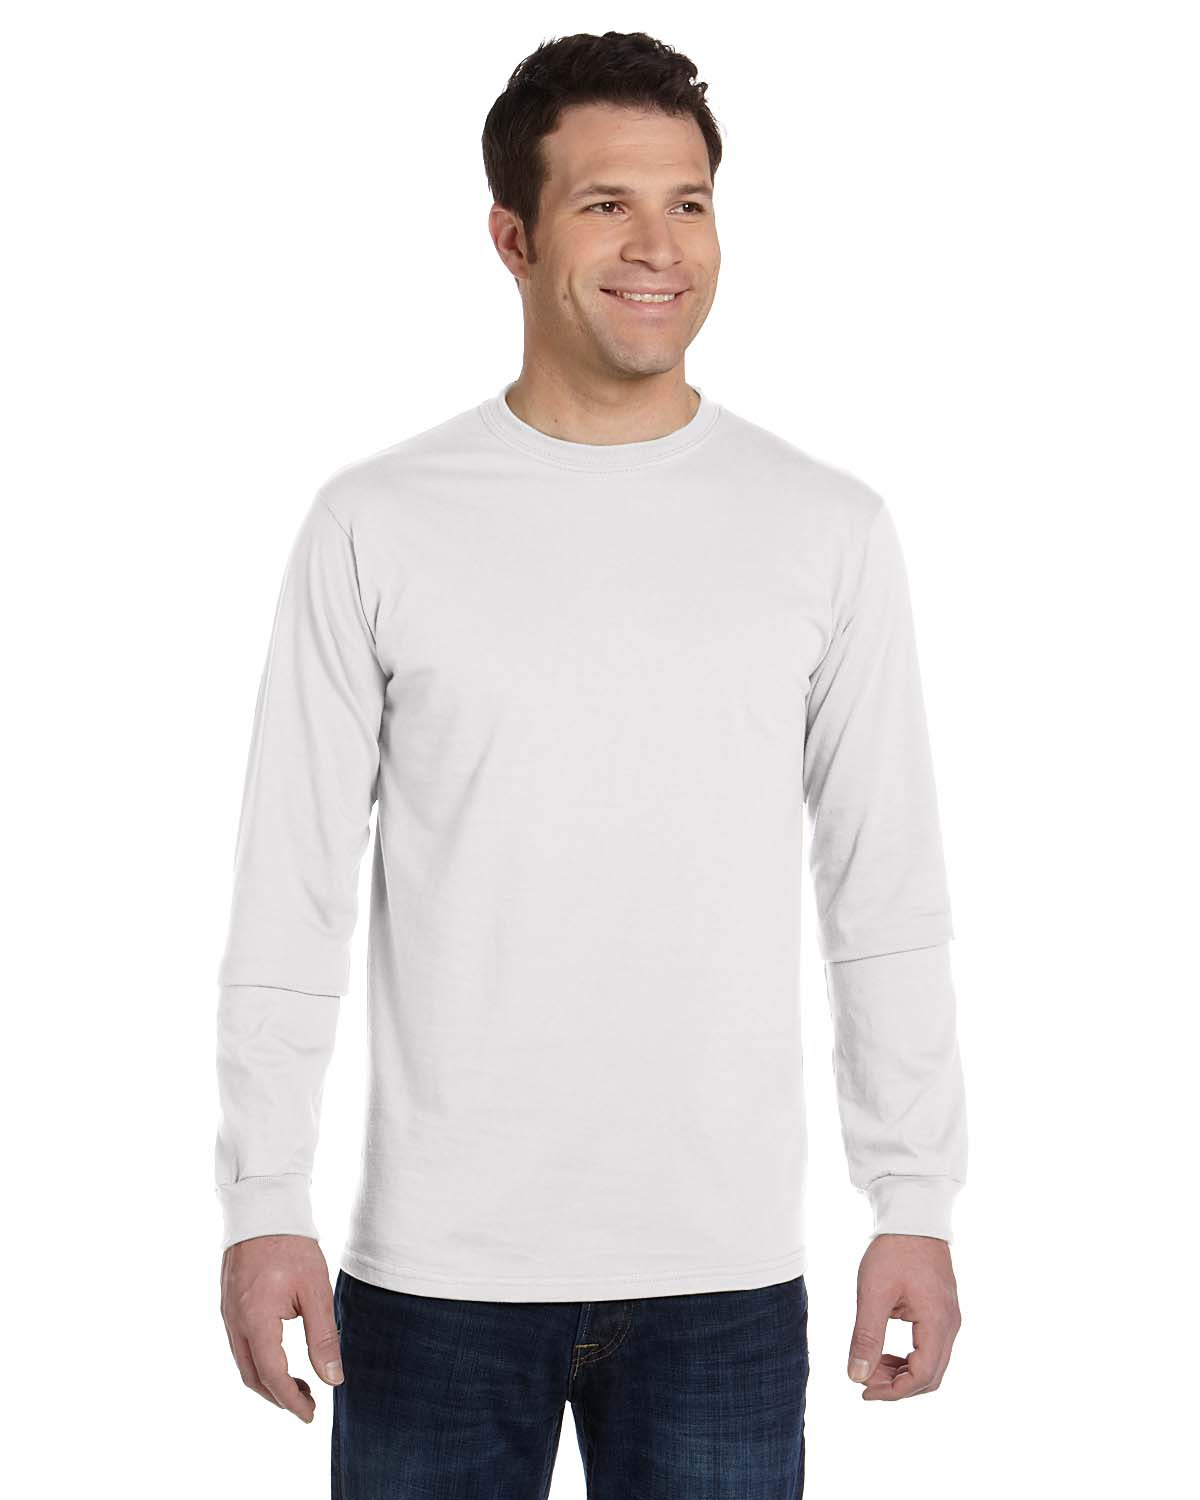 Men 39 s organic cotton ring spun long sleeve t shirt Mens long sleeve white t shirt